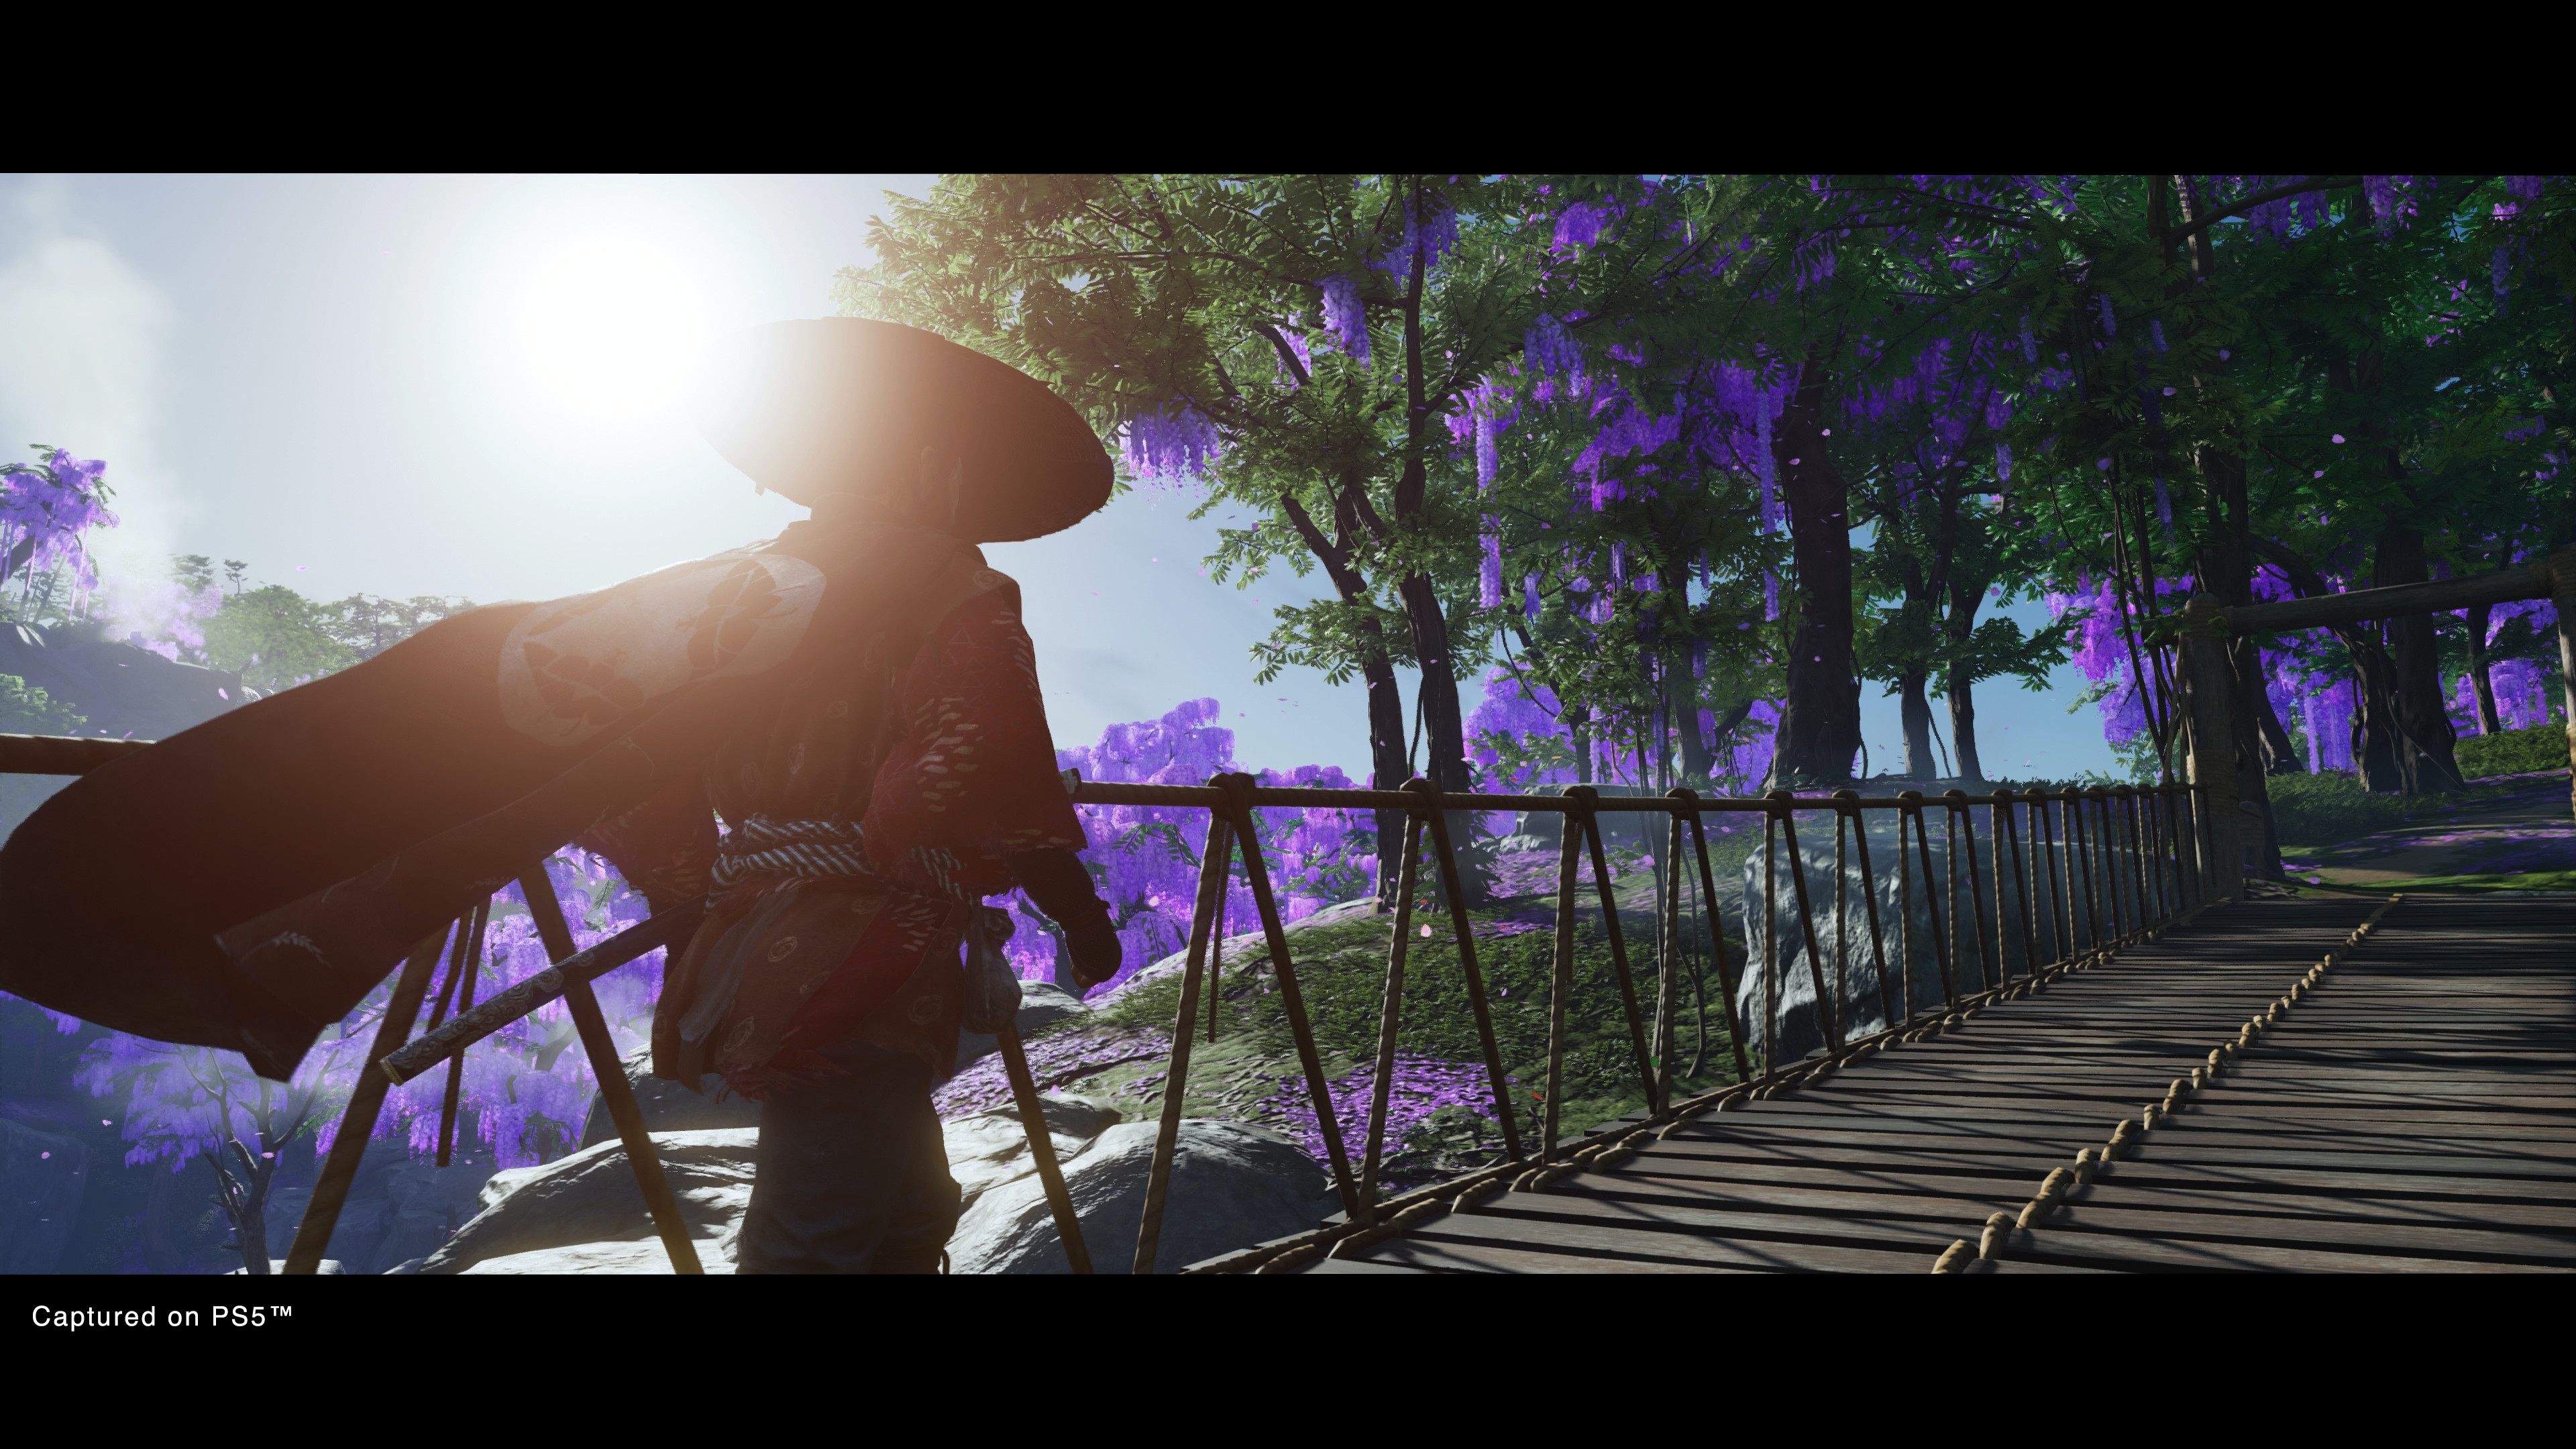 Ghost of Tsushima Director's Cut is looking so fine!